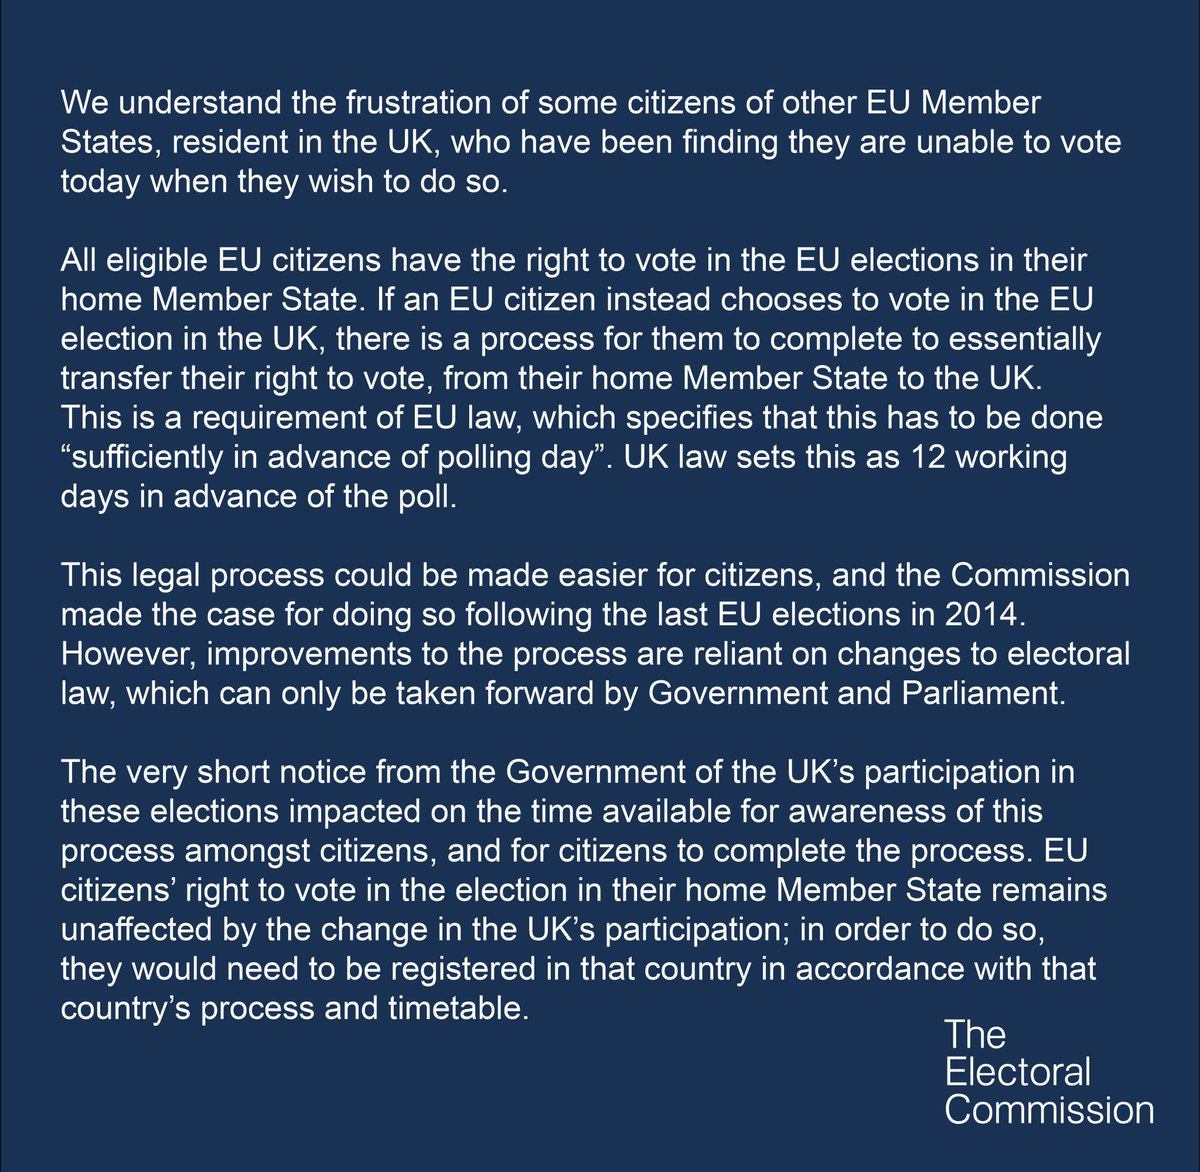 Electoral Commission statement regarding some EU citizens being unable to vote in the European Parliamentary Elections